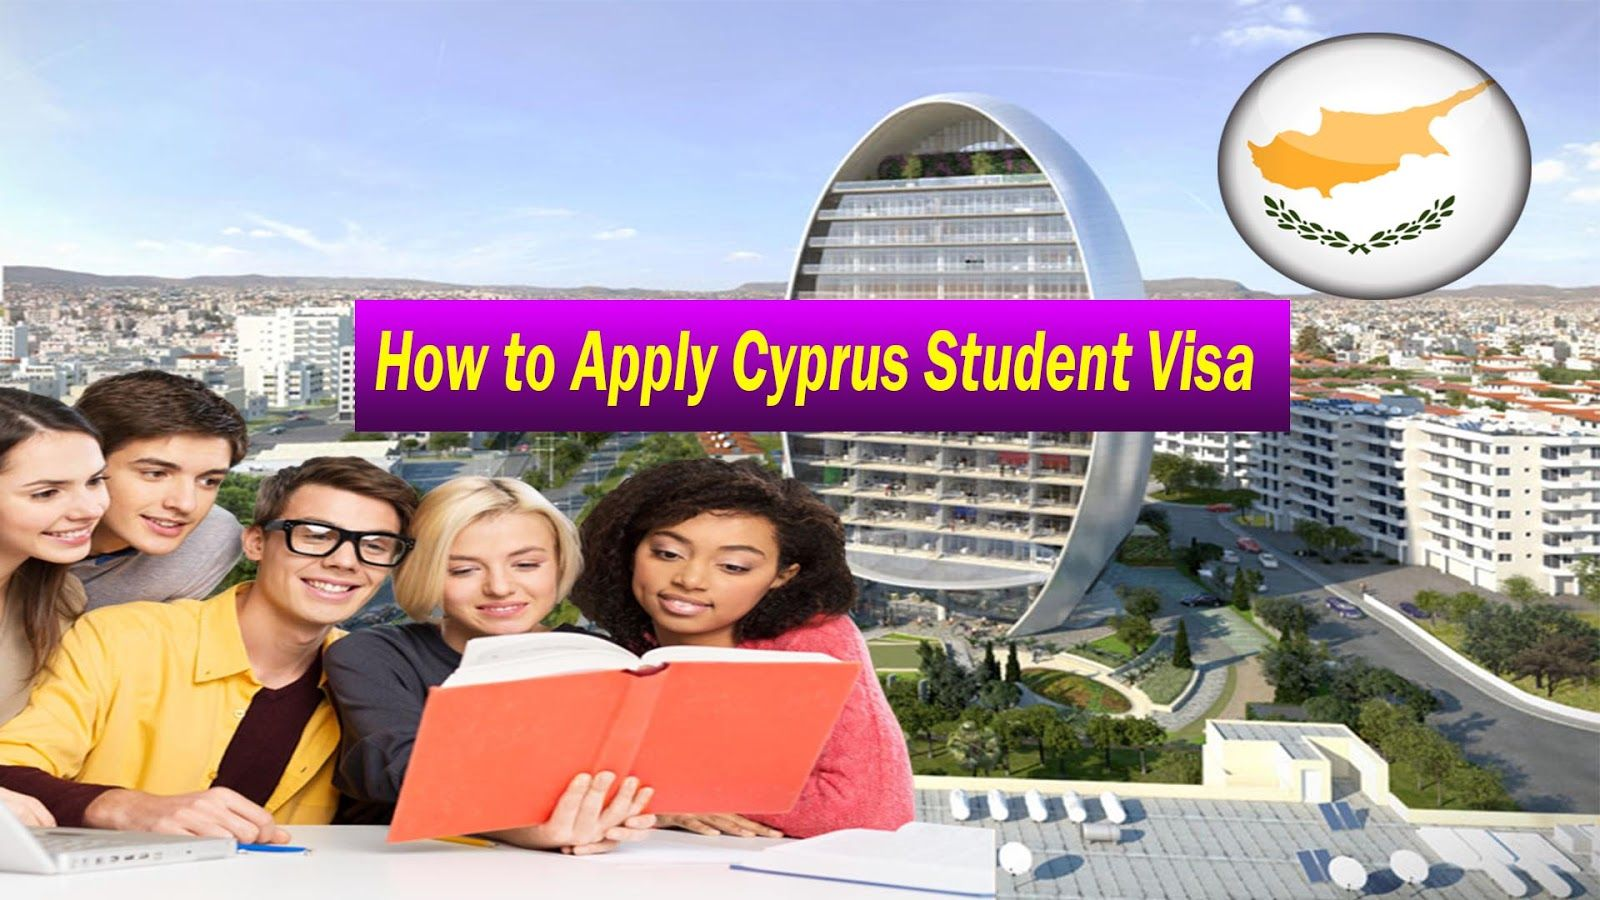 Cyprus Student Visa How to Apply Taskeen Channel How